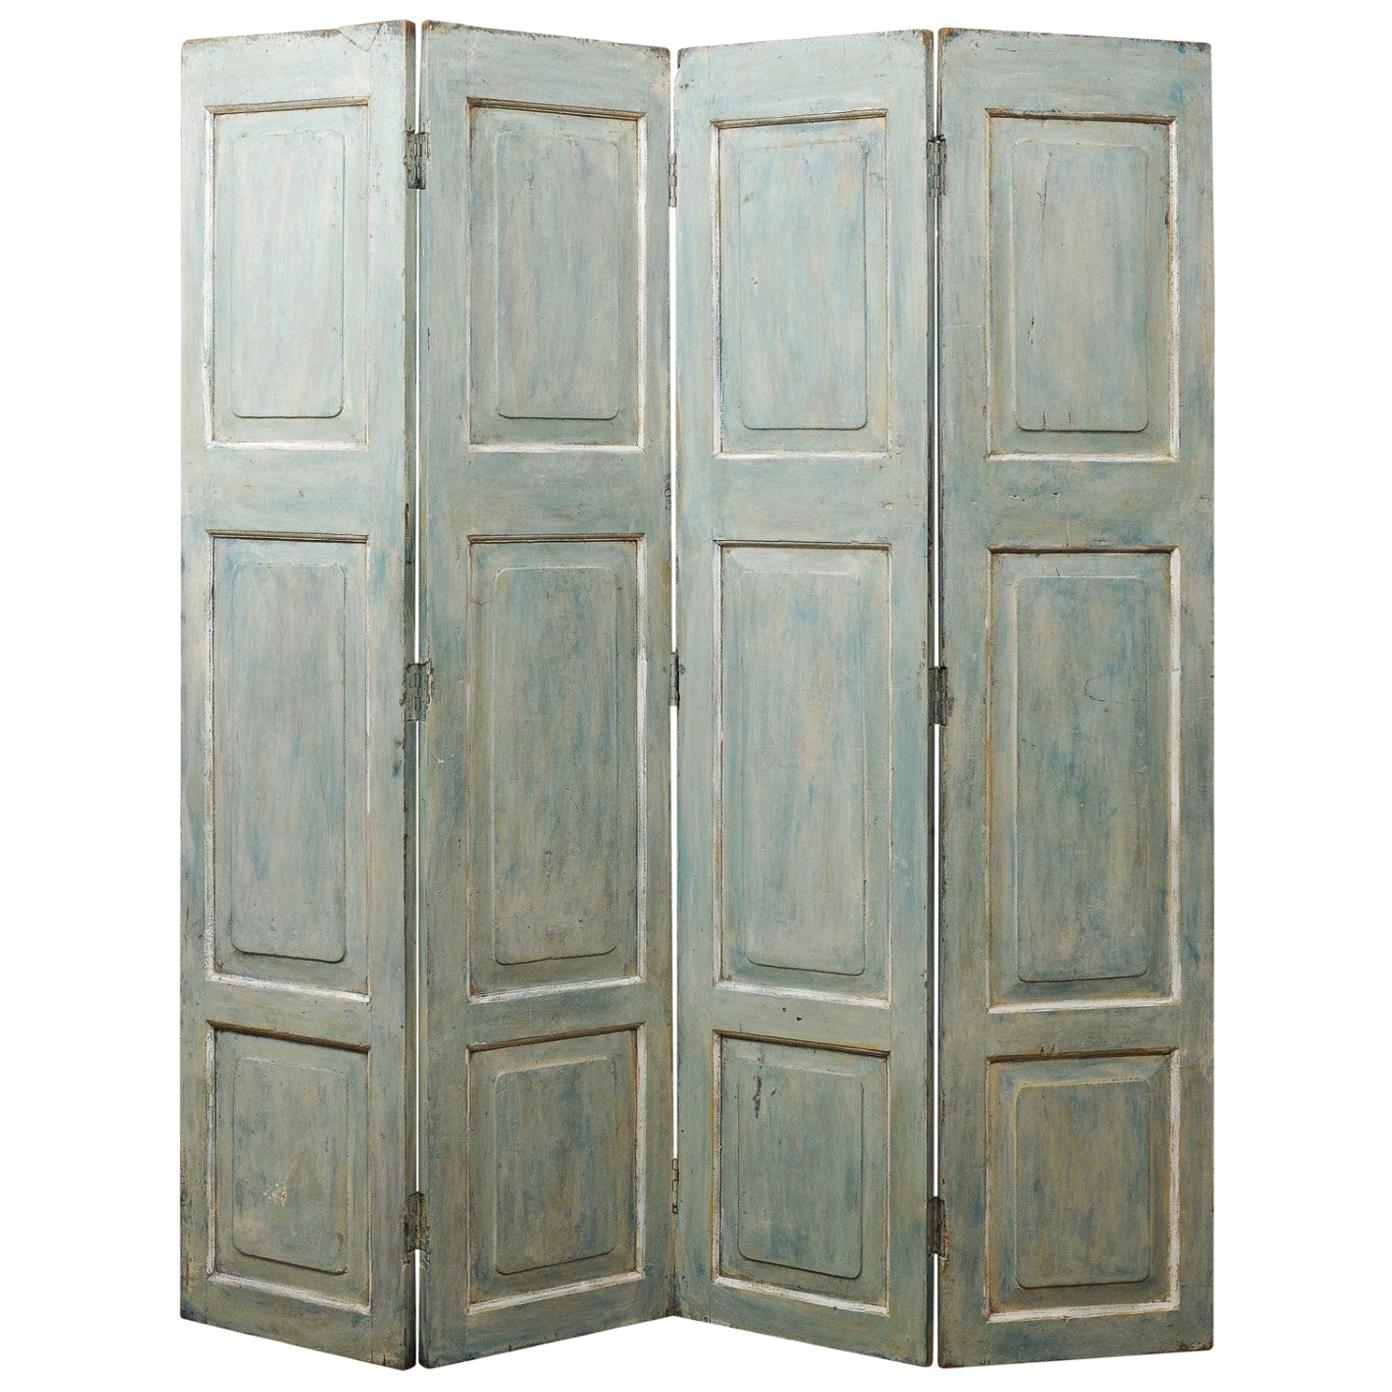 19th Century French Raised Panel Painted Wood Folding Screen Room Divider